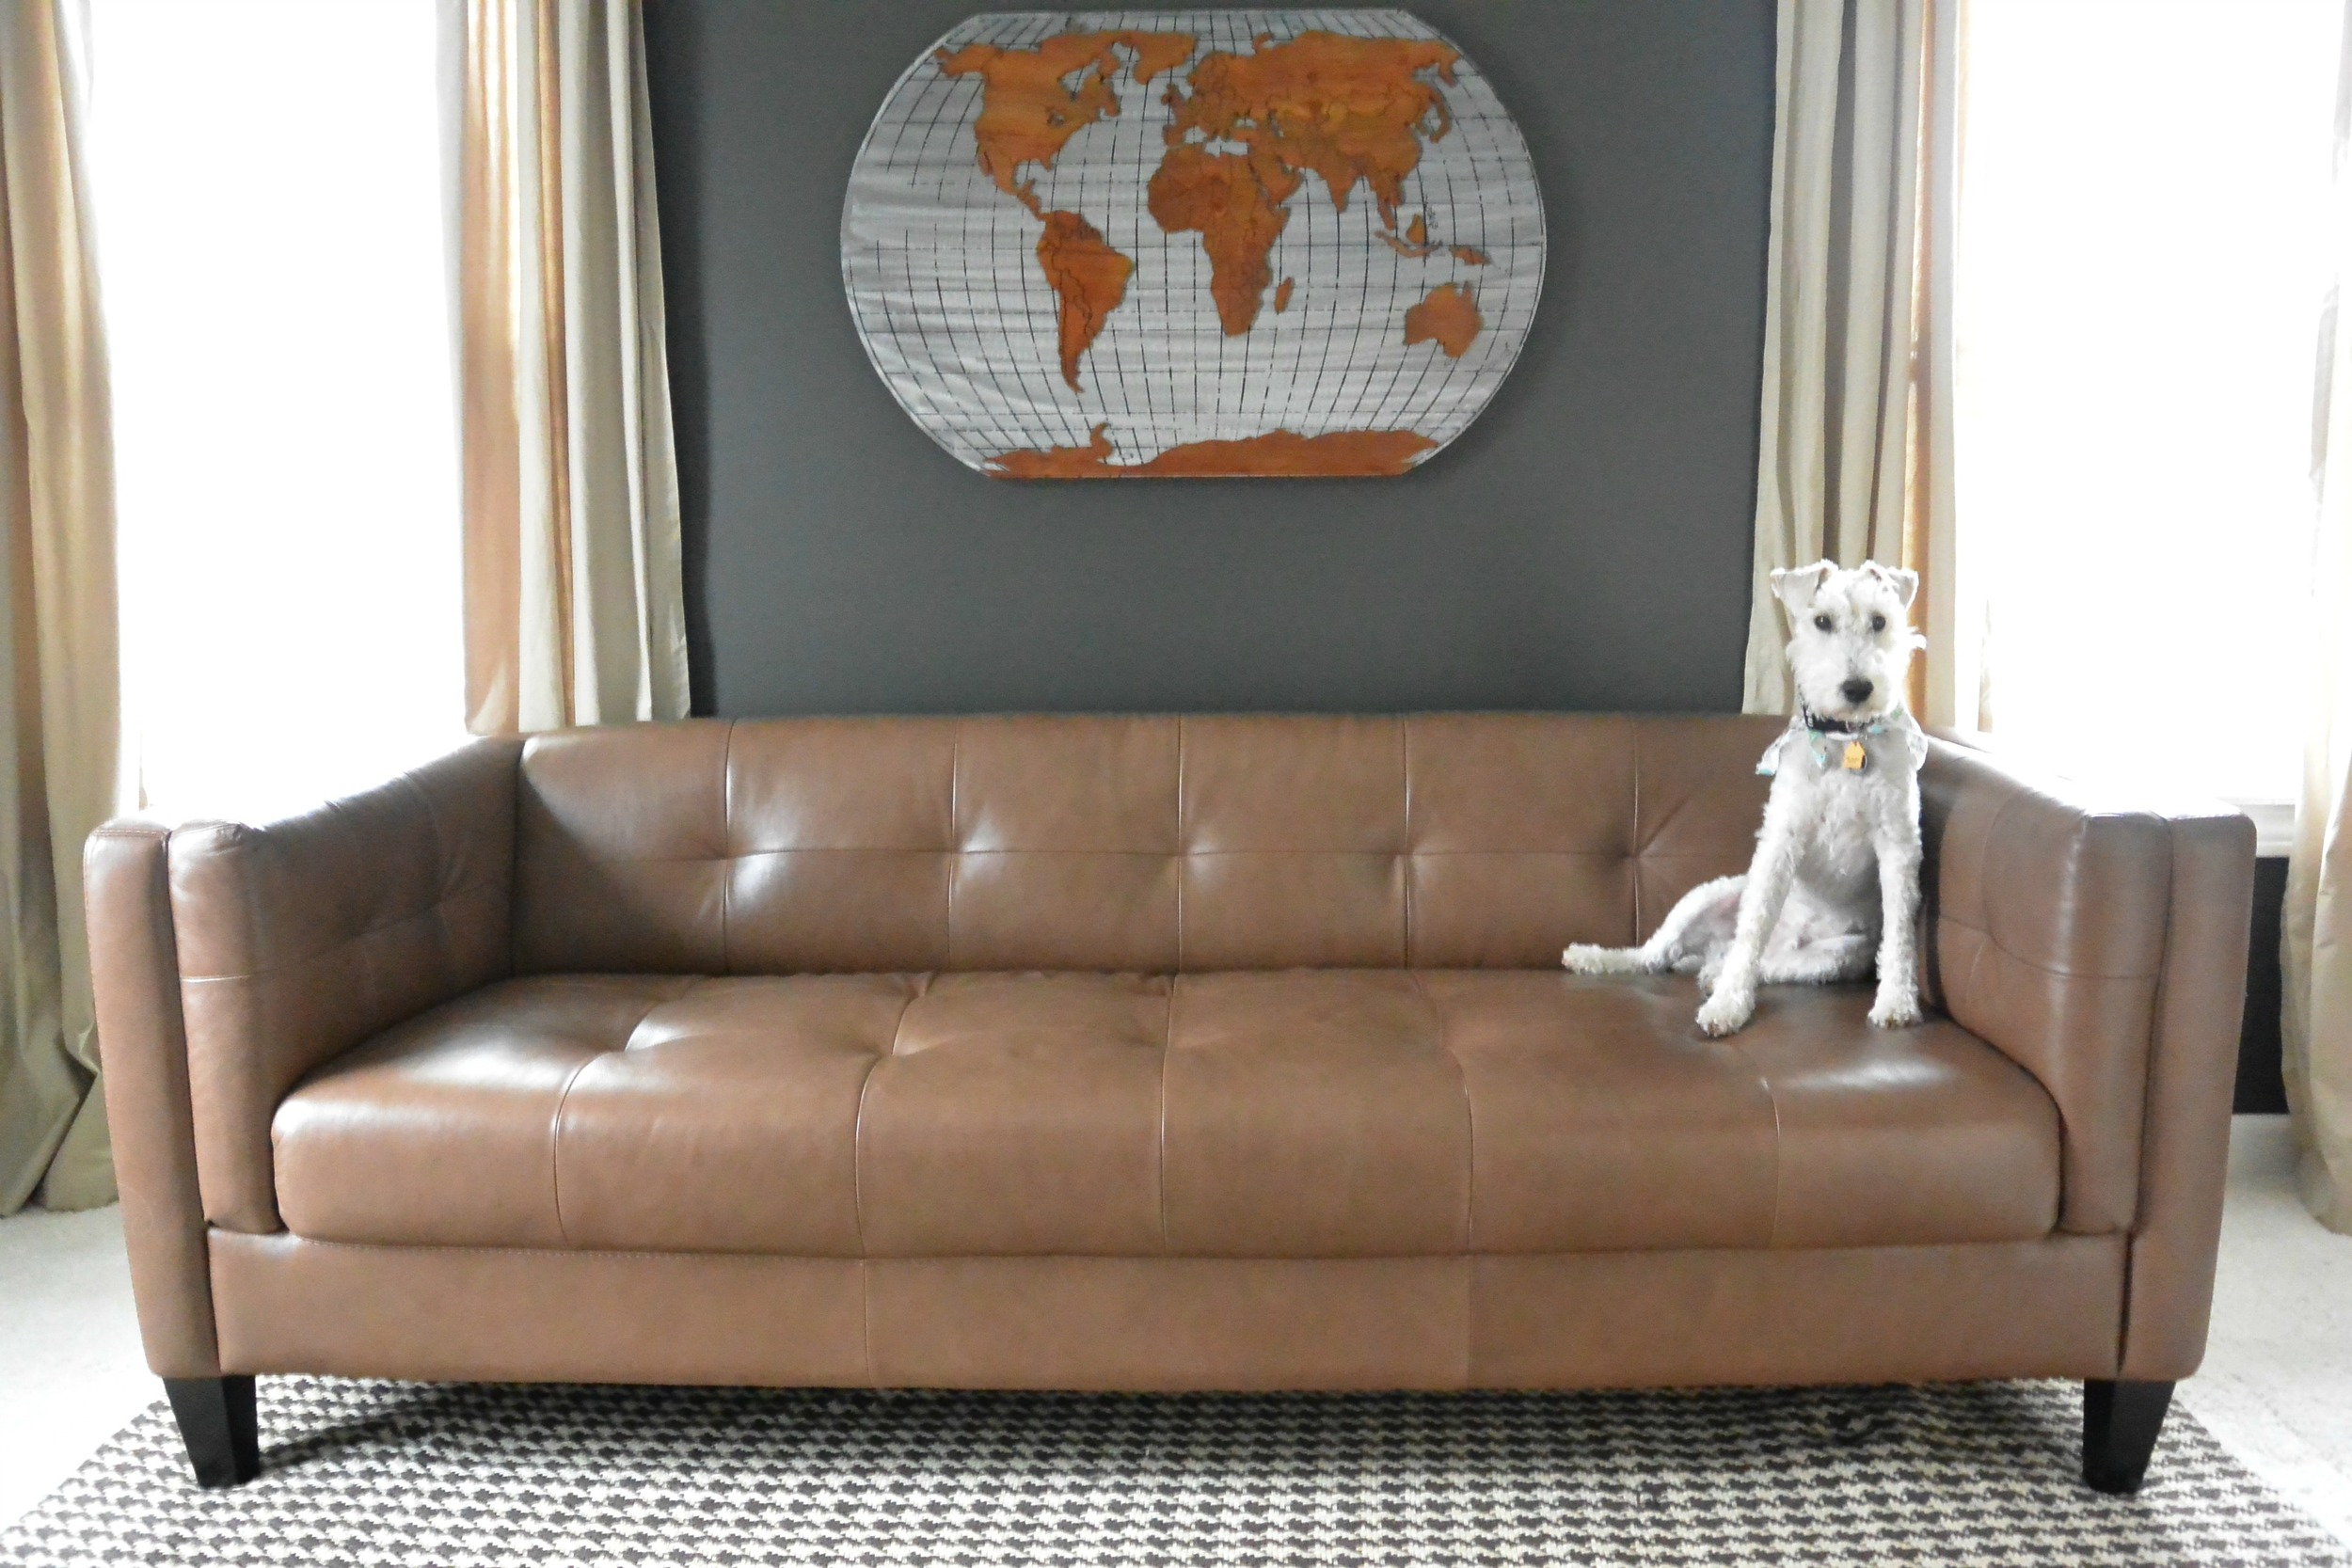 New Office Art | Decor and the Dog